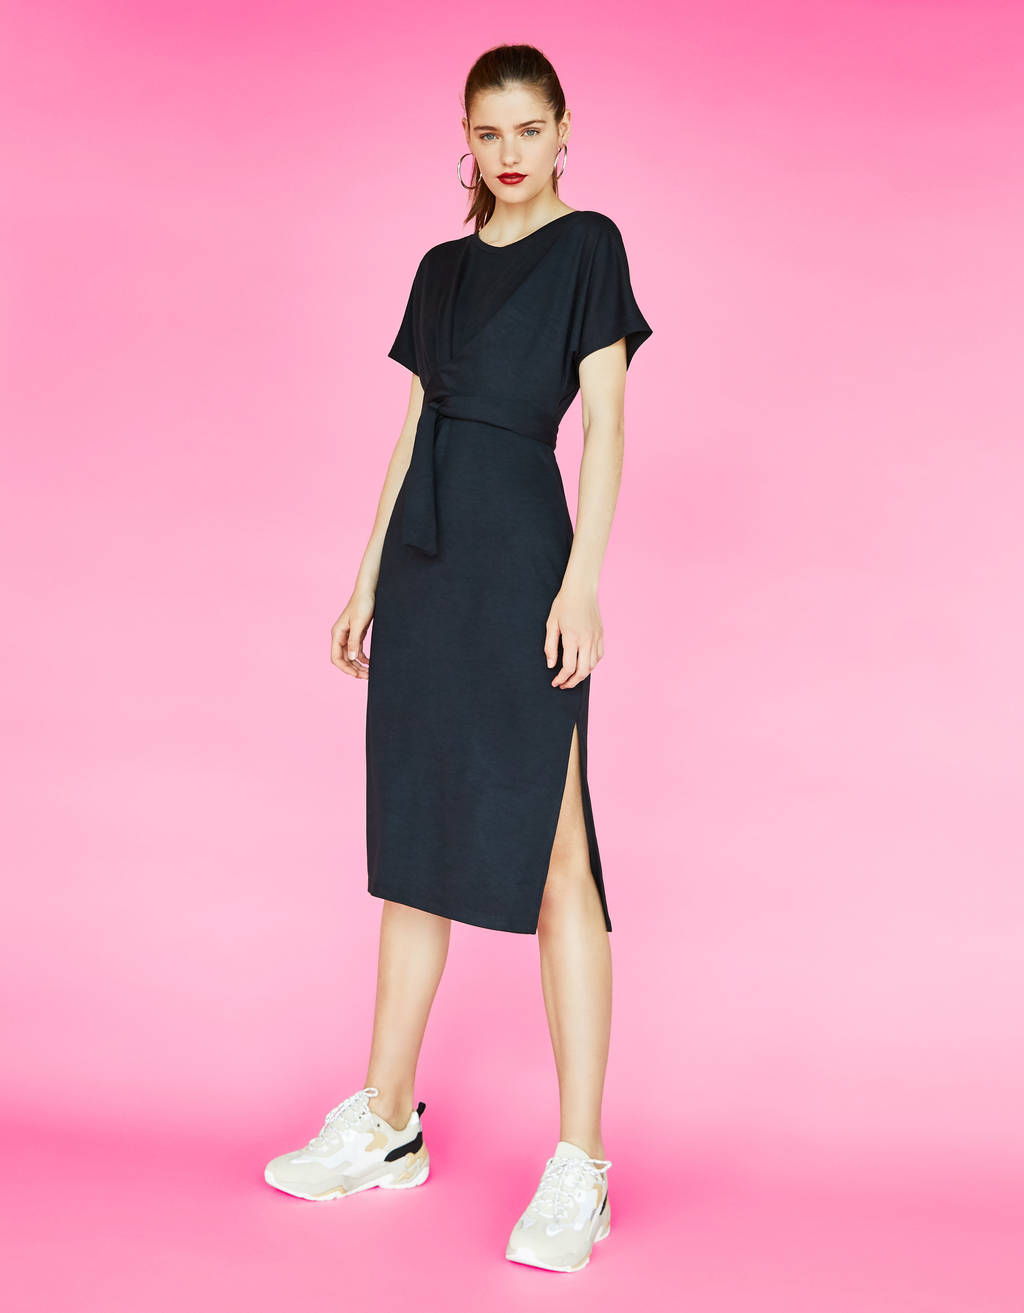 74bf7d82181 Women s Dresses - Spring Summer 2019